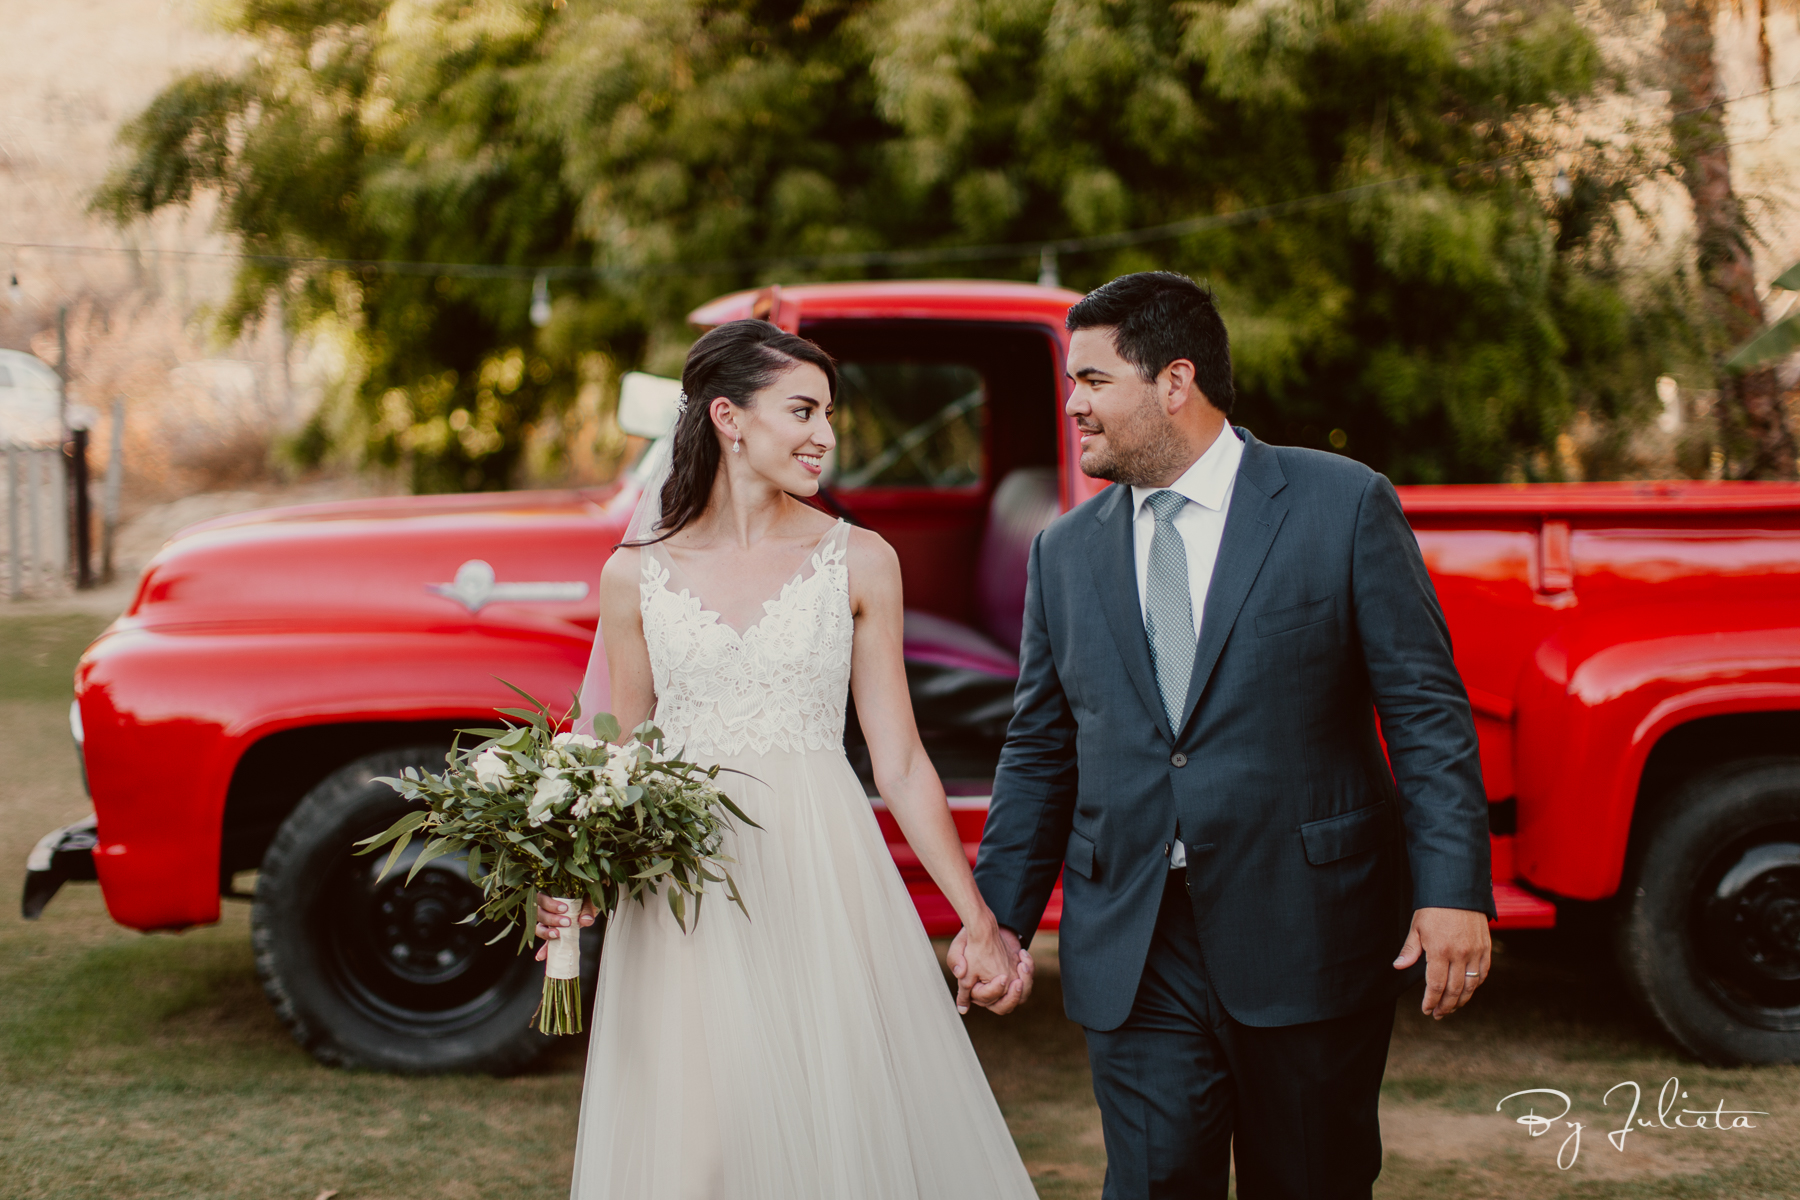 FlorasFarmWedding.L+S.JulietaAmezcuaPhotography.(425of750).jpg